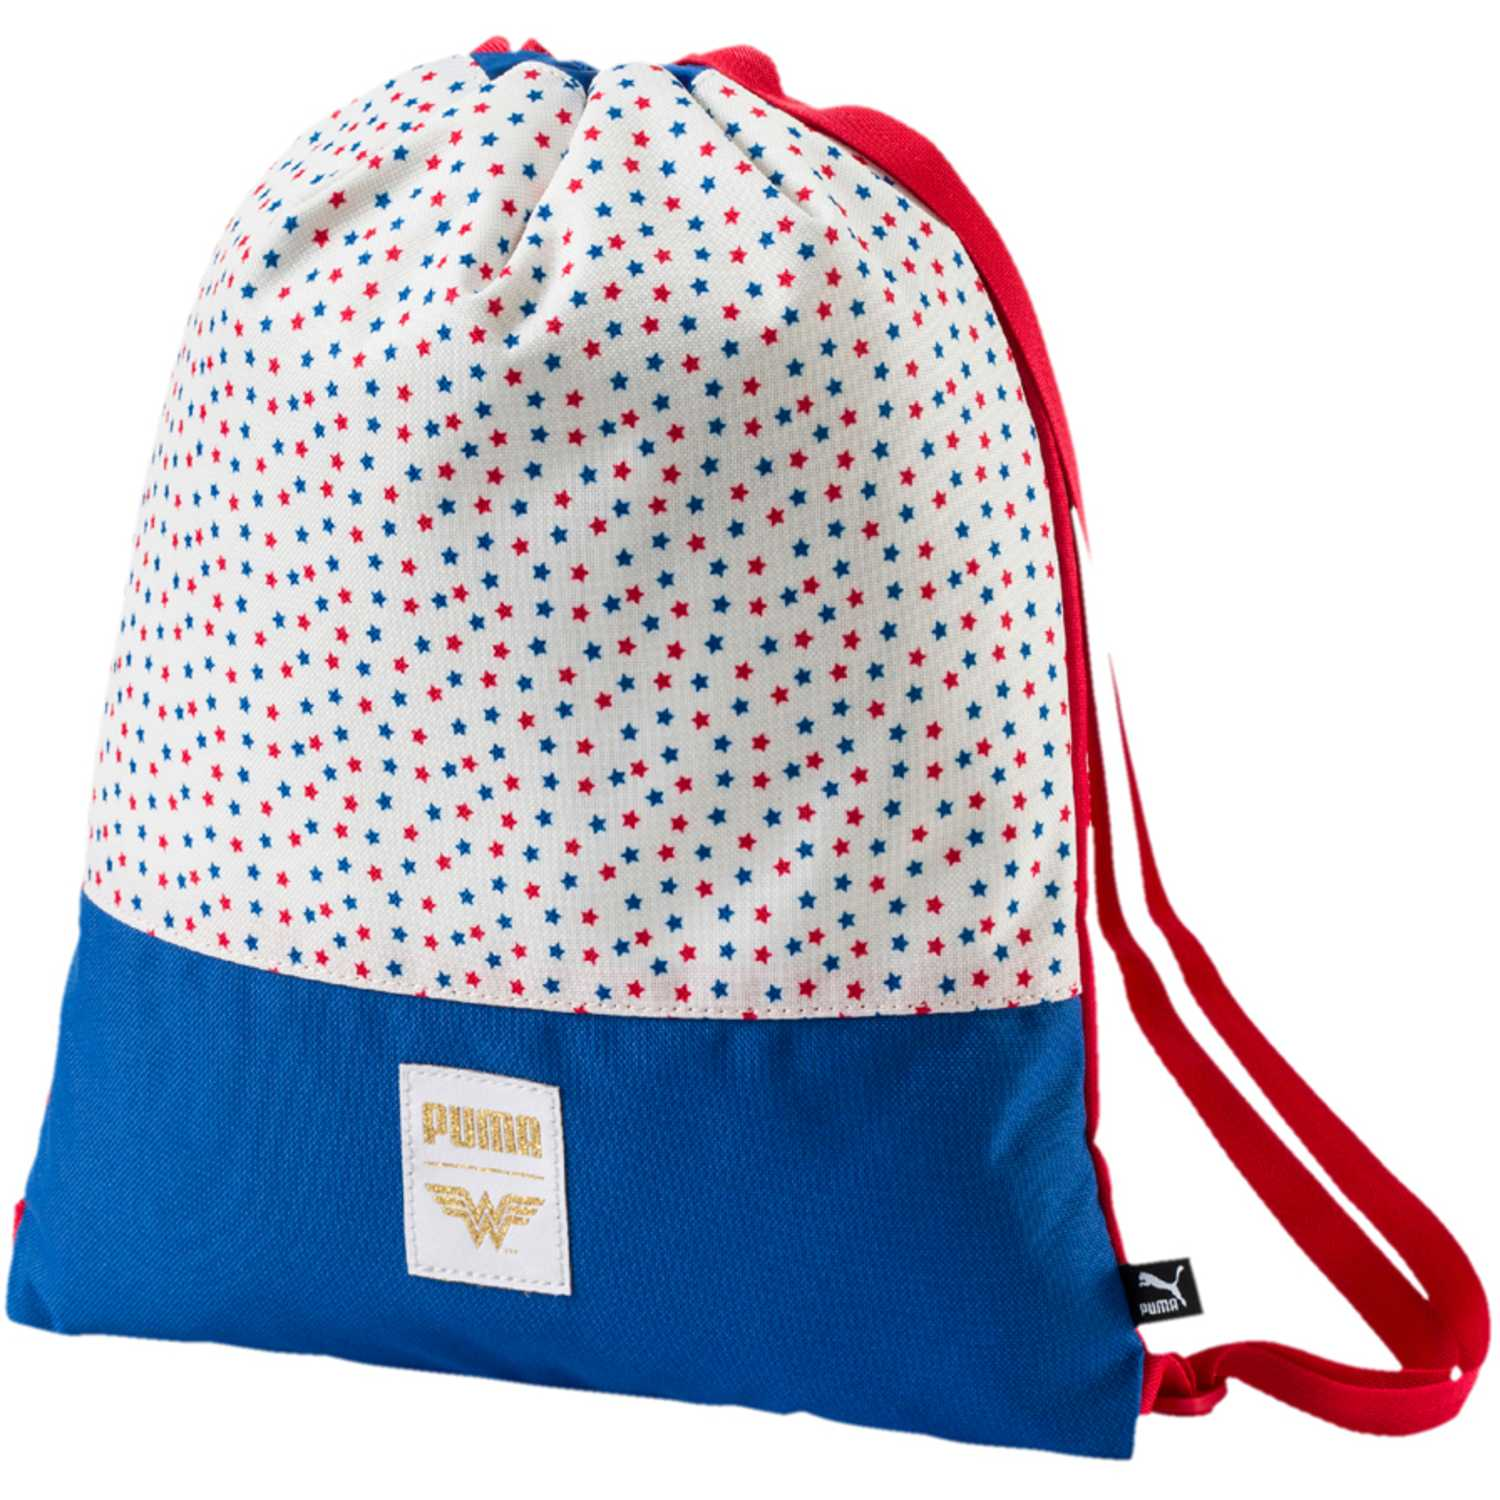 Bolso de Niña Puma Blanco / azul wonder woman gym sack